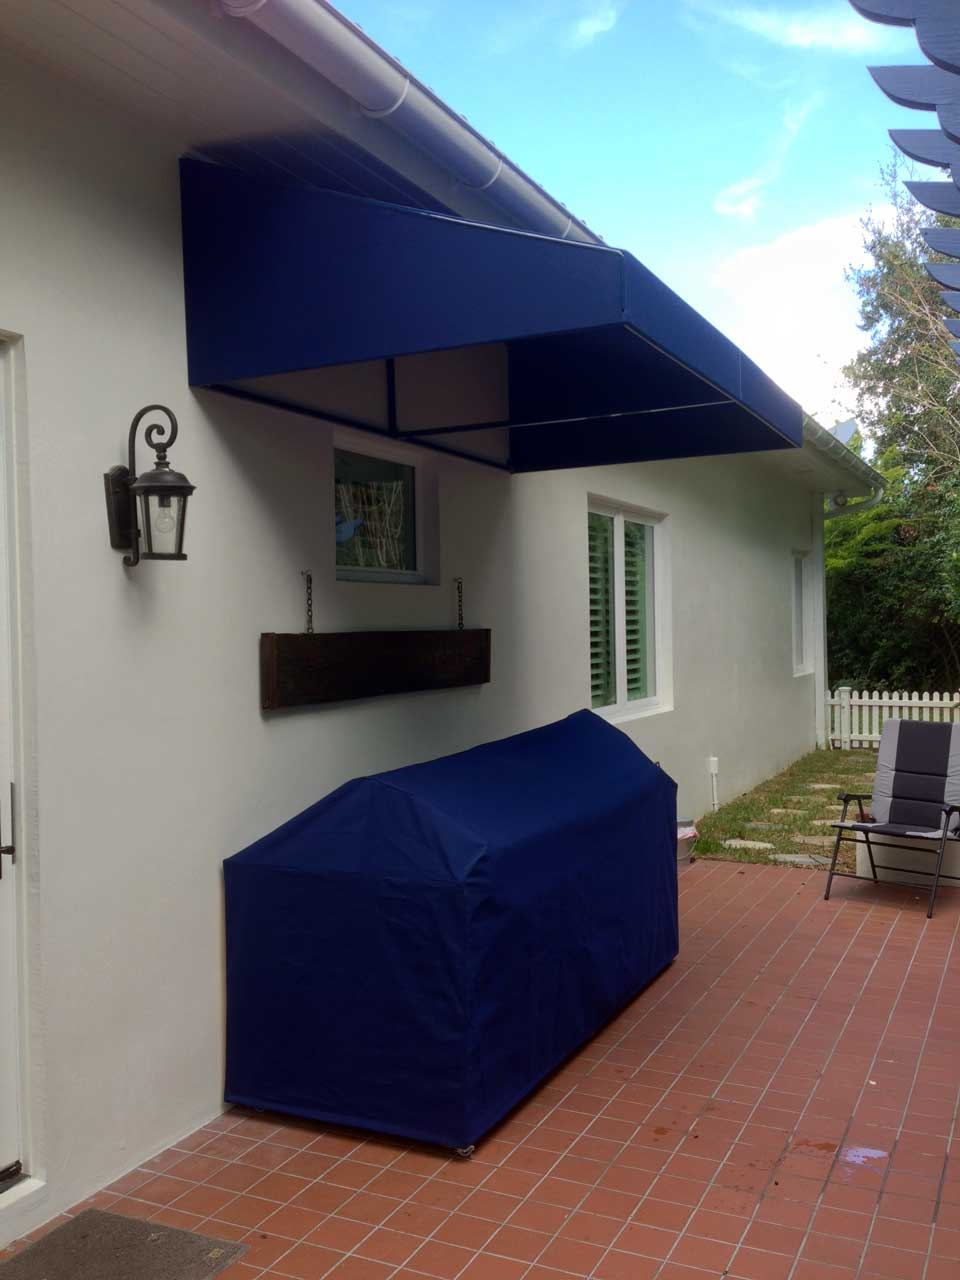 Awning & grill cover